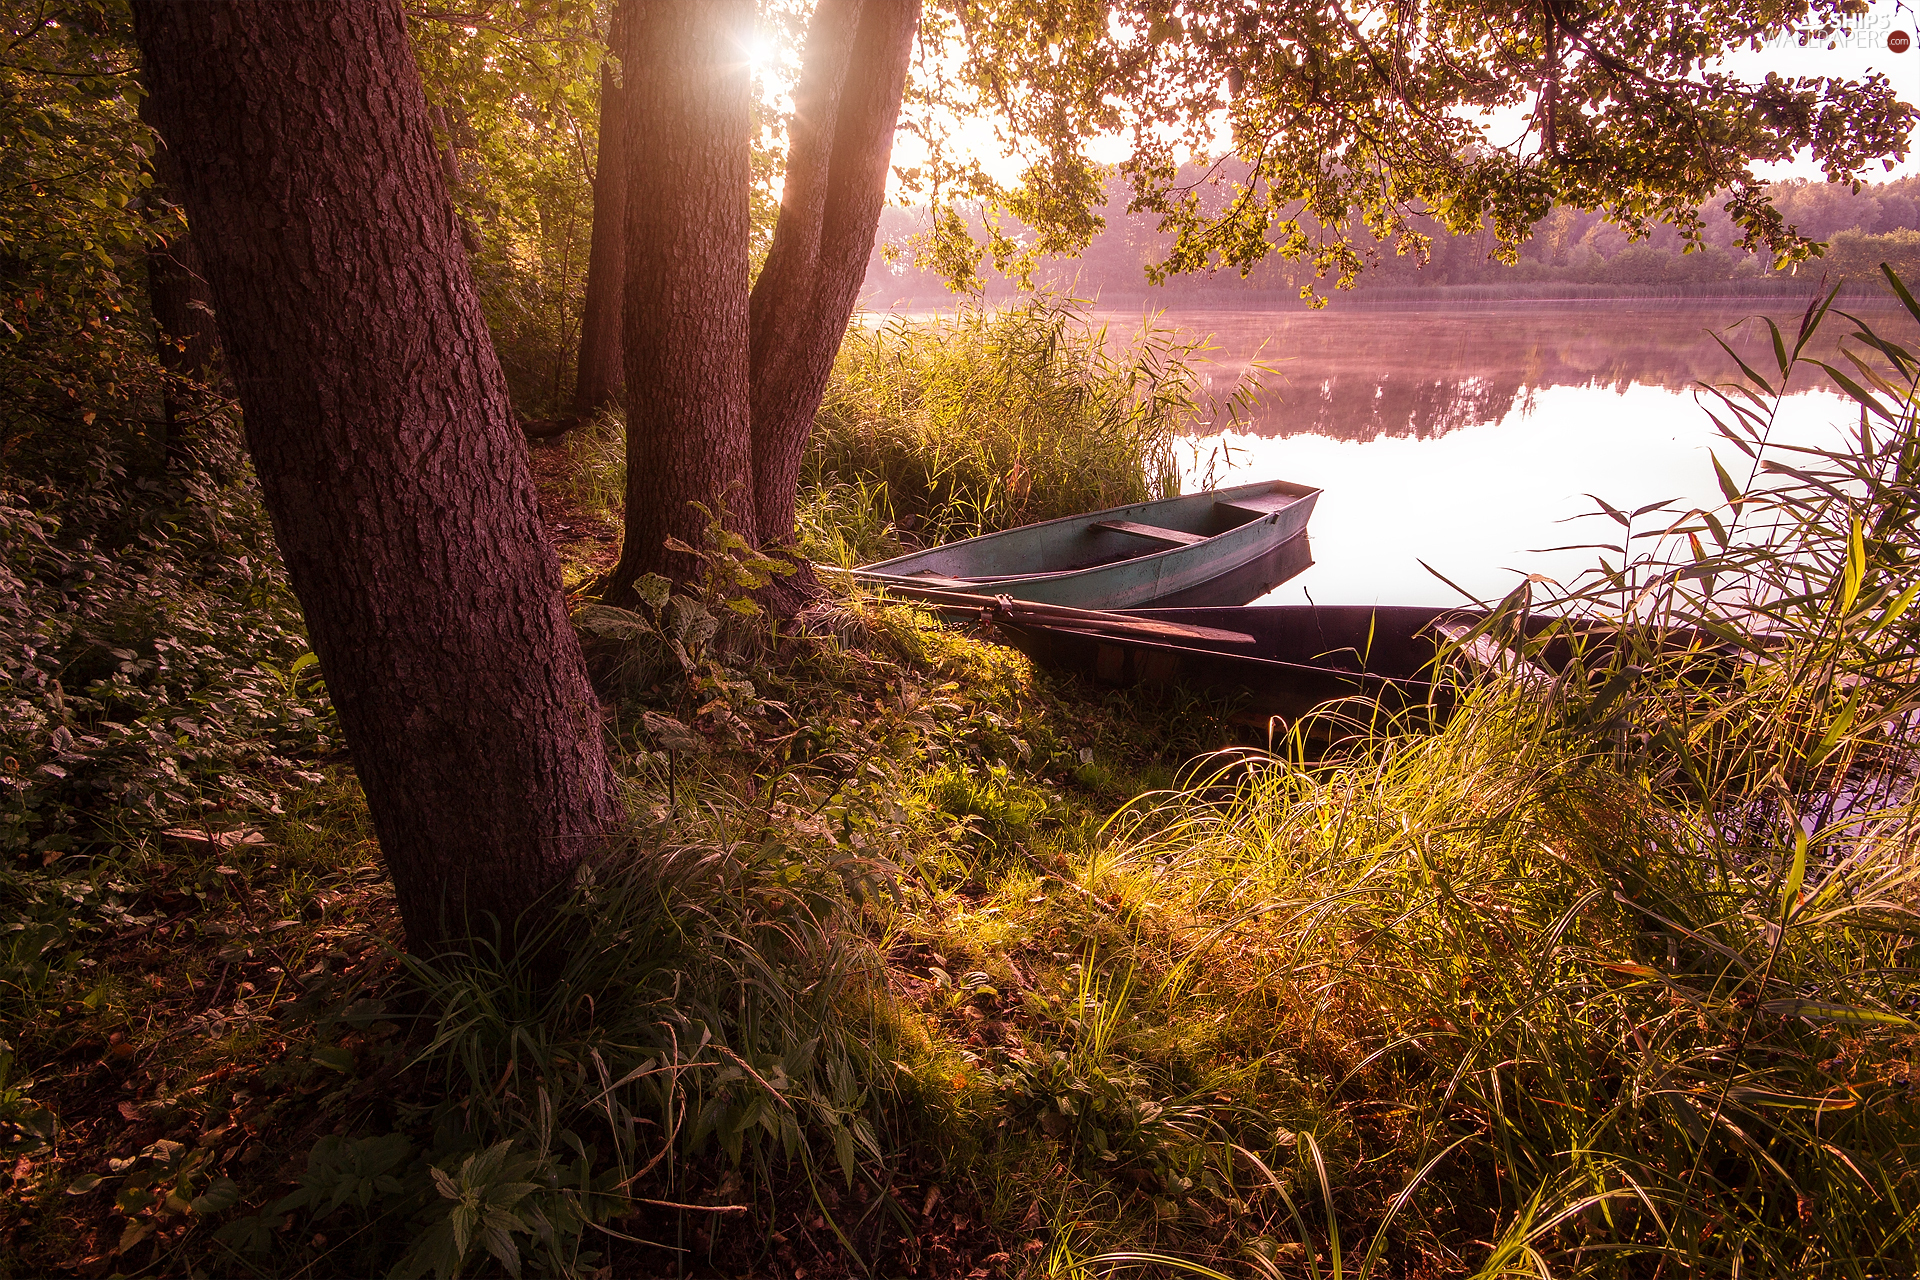 trees, boats, Plants, coast, lake, viewes, grass